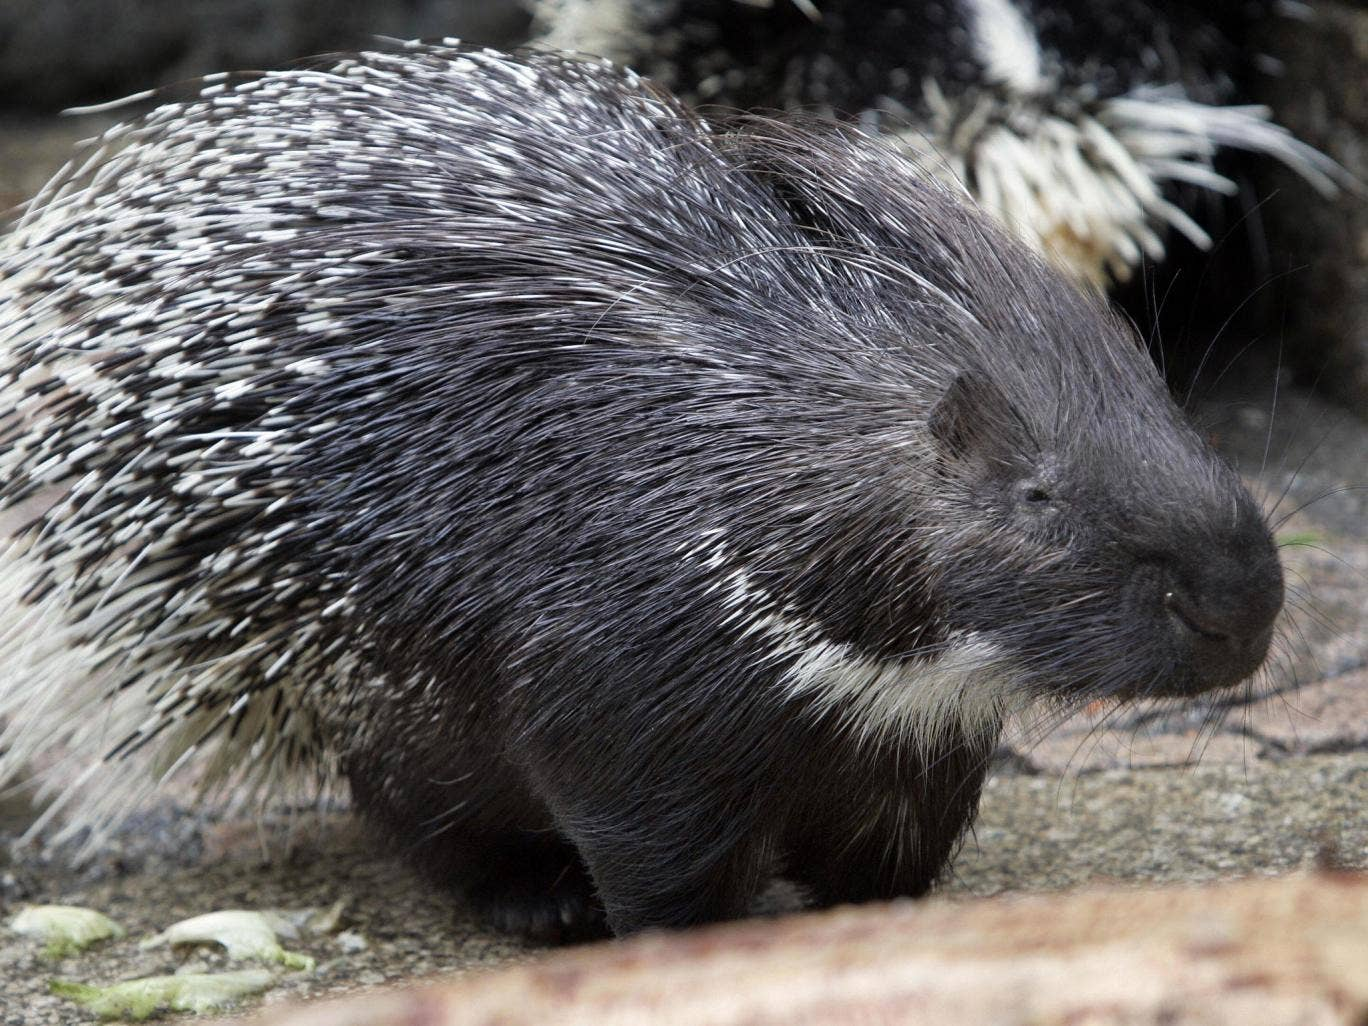 A porcupine fell onto the head of a woman and left over 250 quills in her scalp